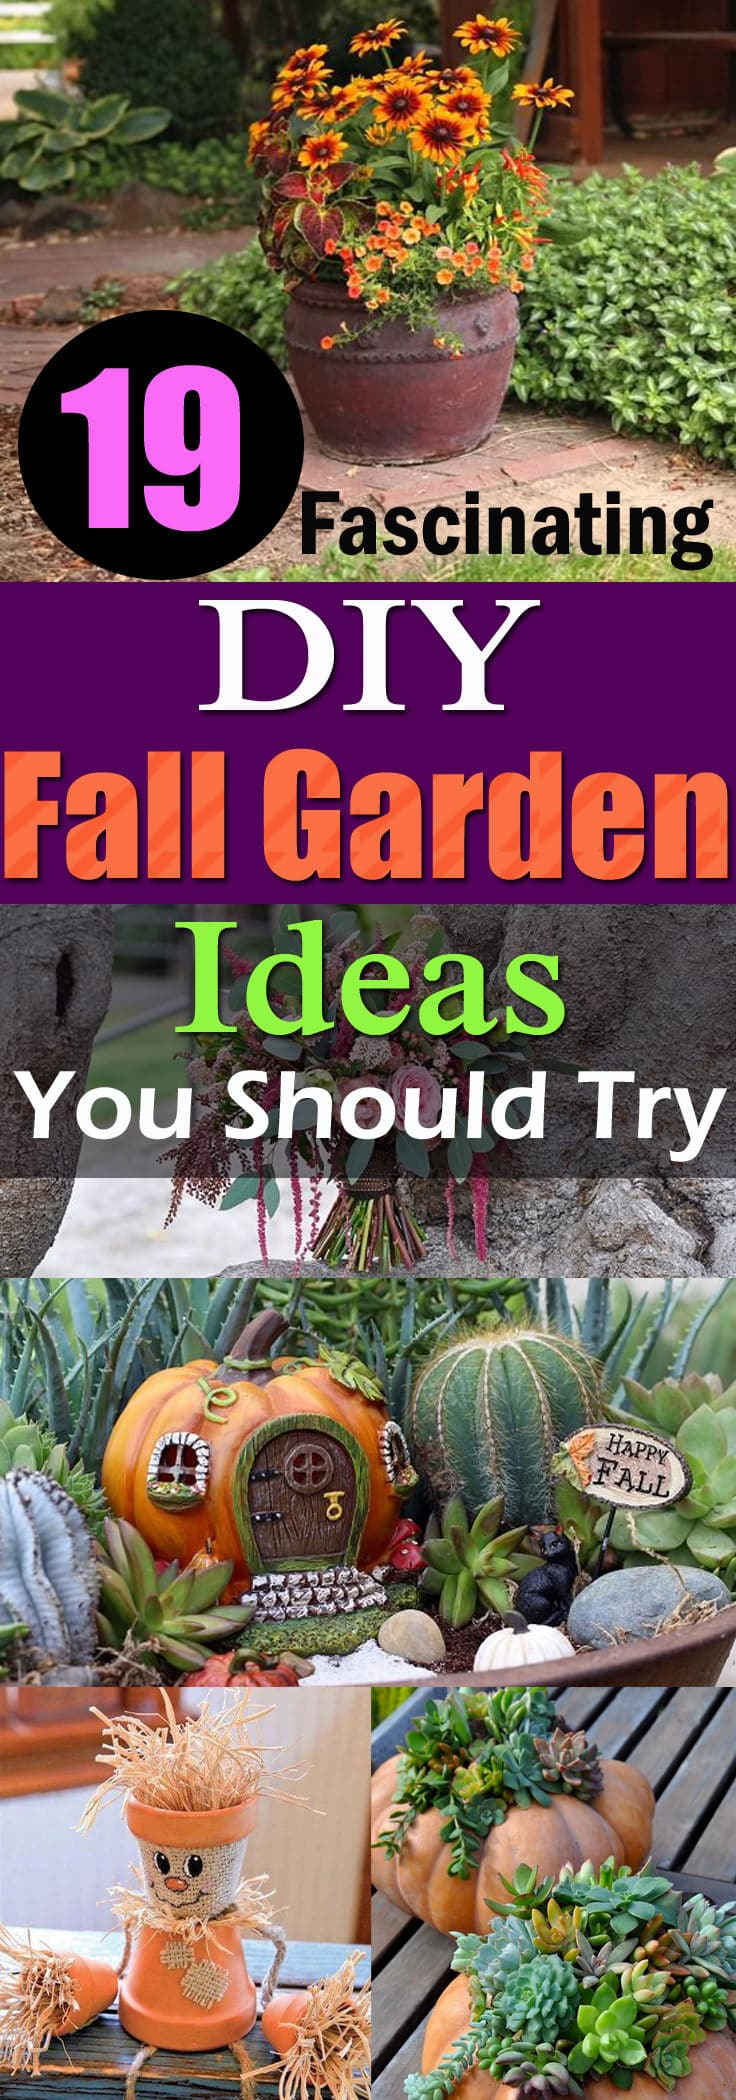 Fall brings up the lack of interest in the gardening, which amplifies in the winter, but you can avoid this by following the DIY Fall Garden Ideas and Projects here!